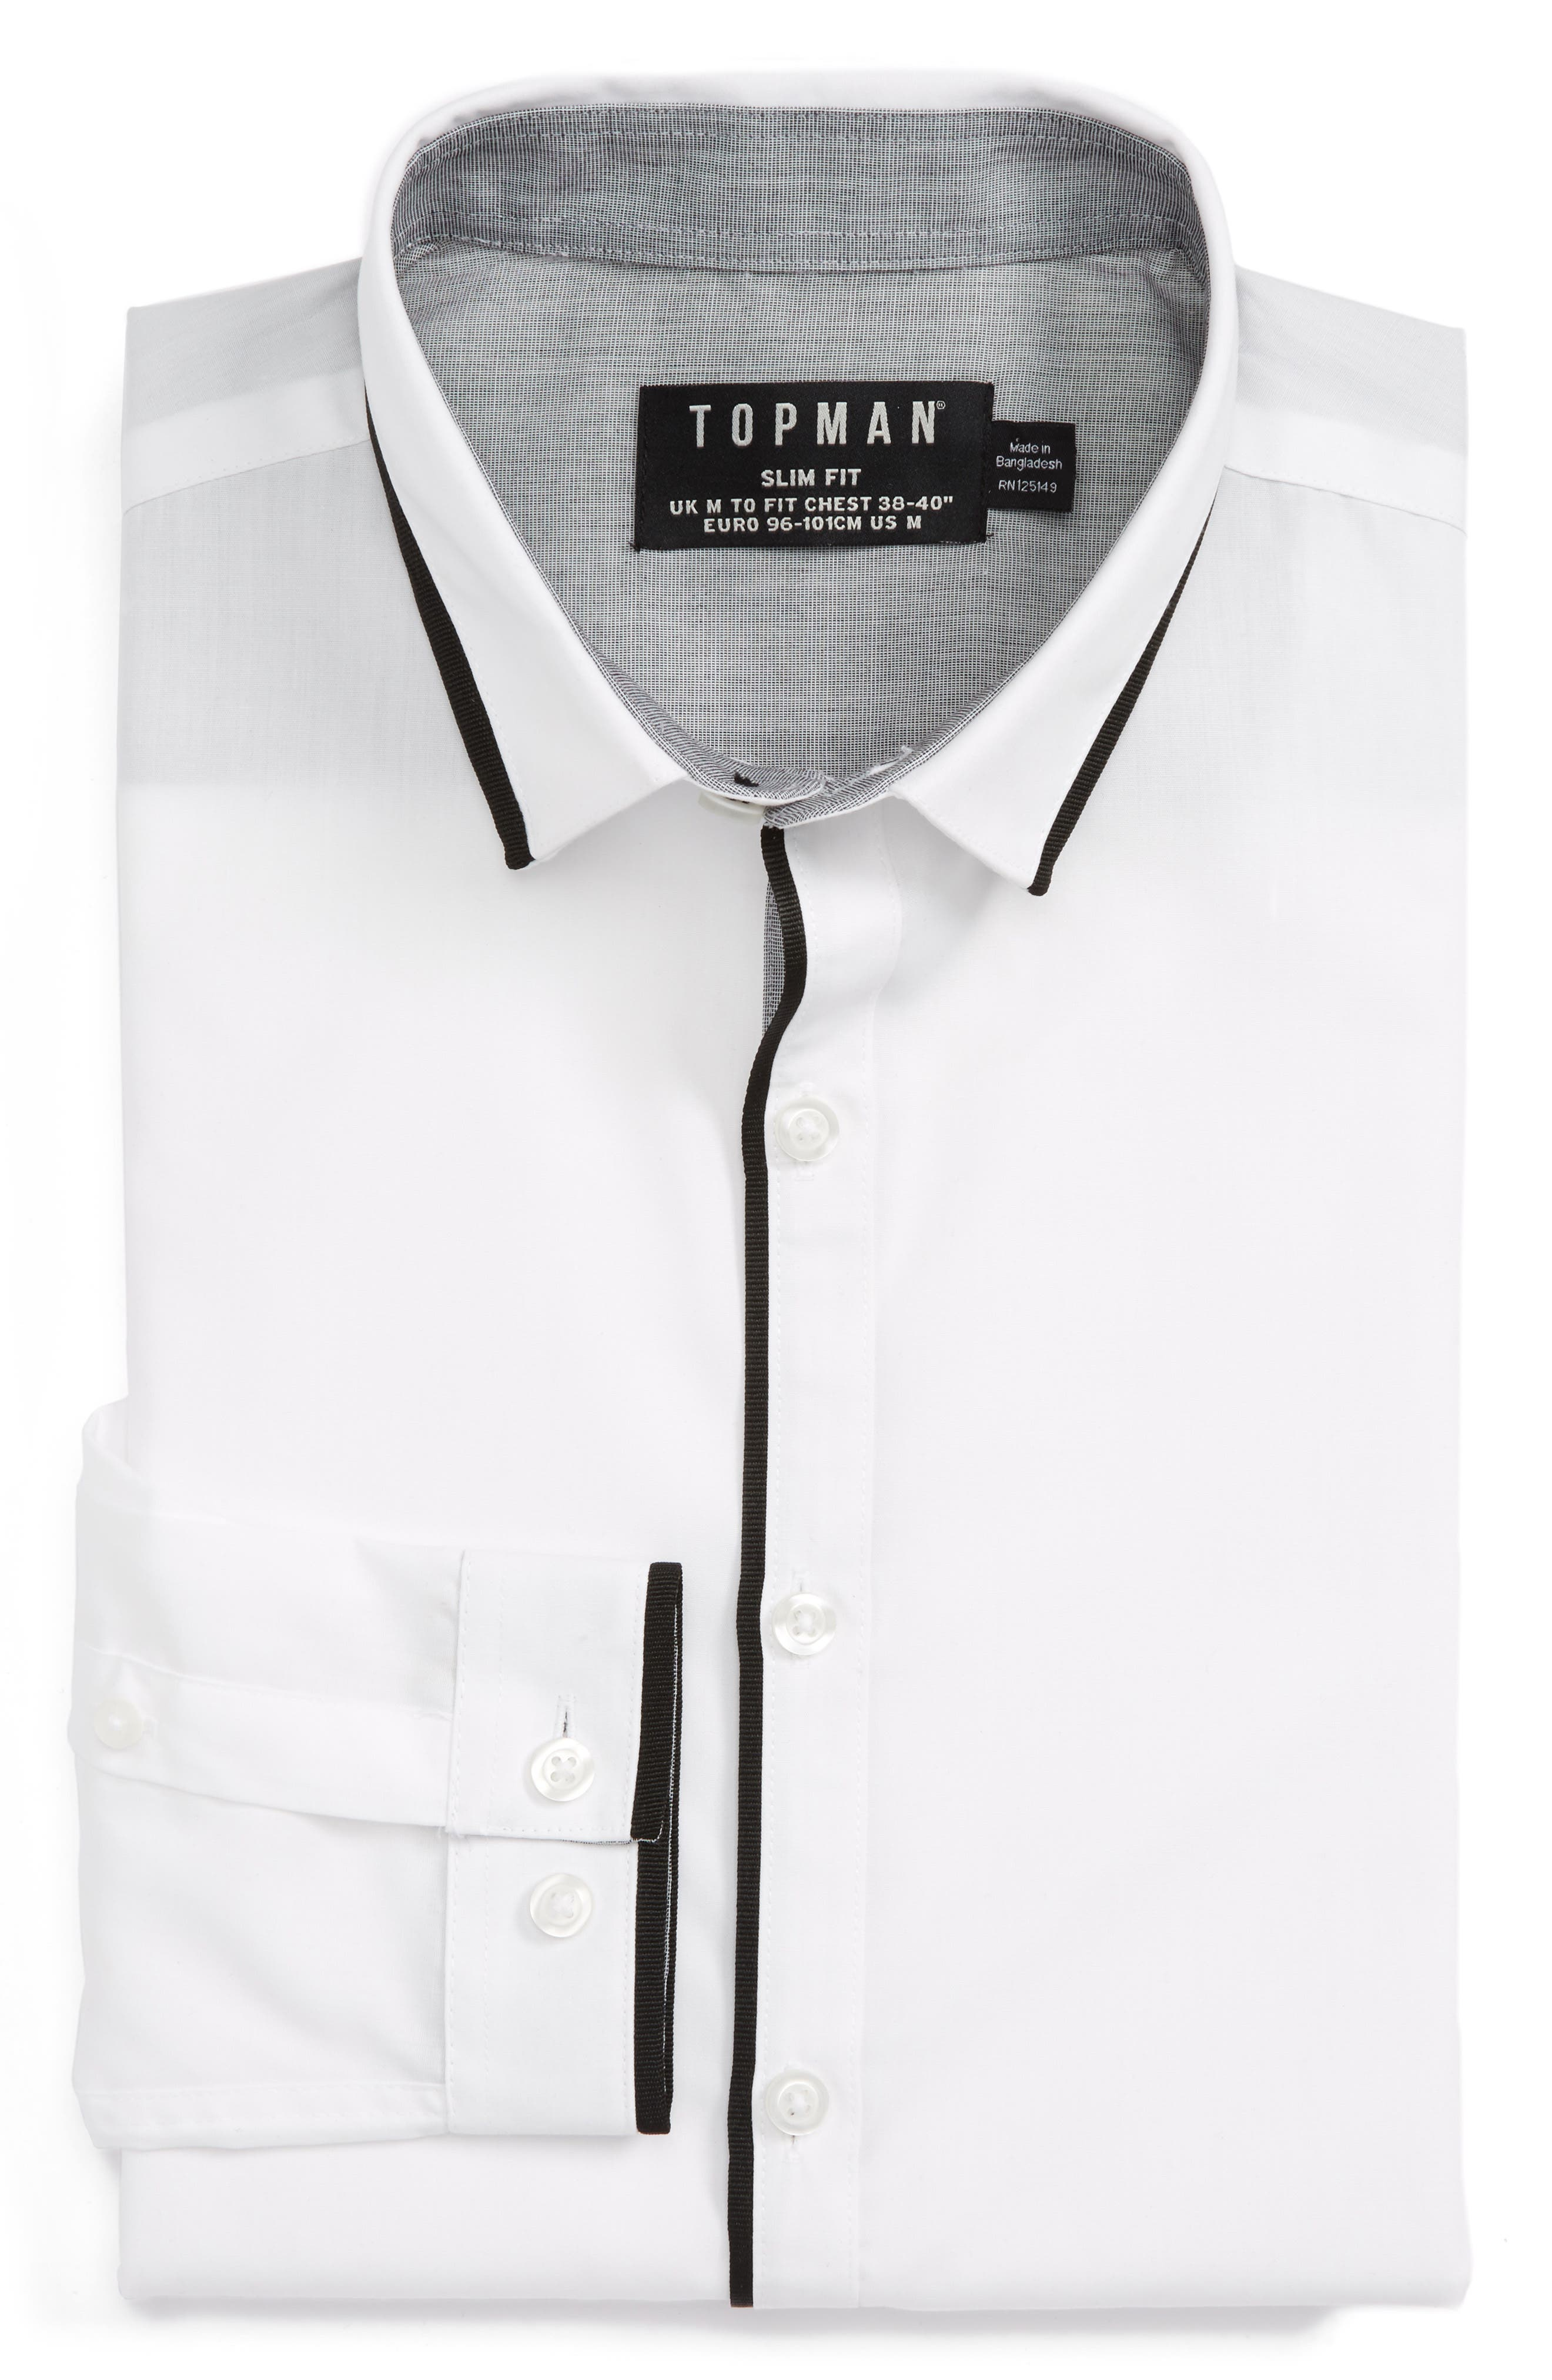 Topman Slim Fit Contrast Dress Shirt